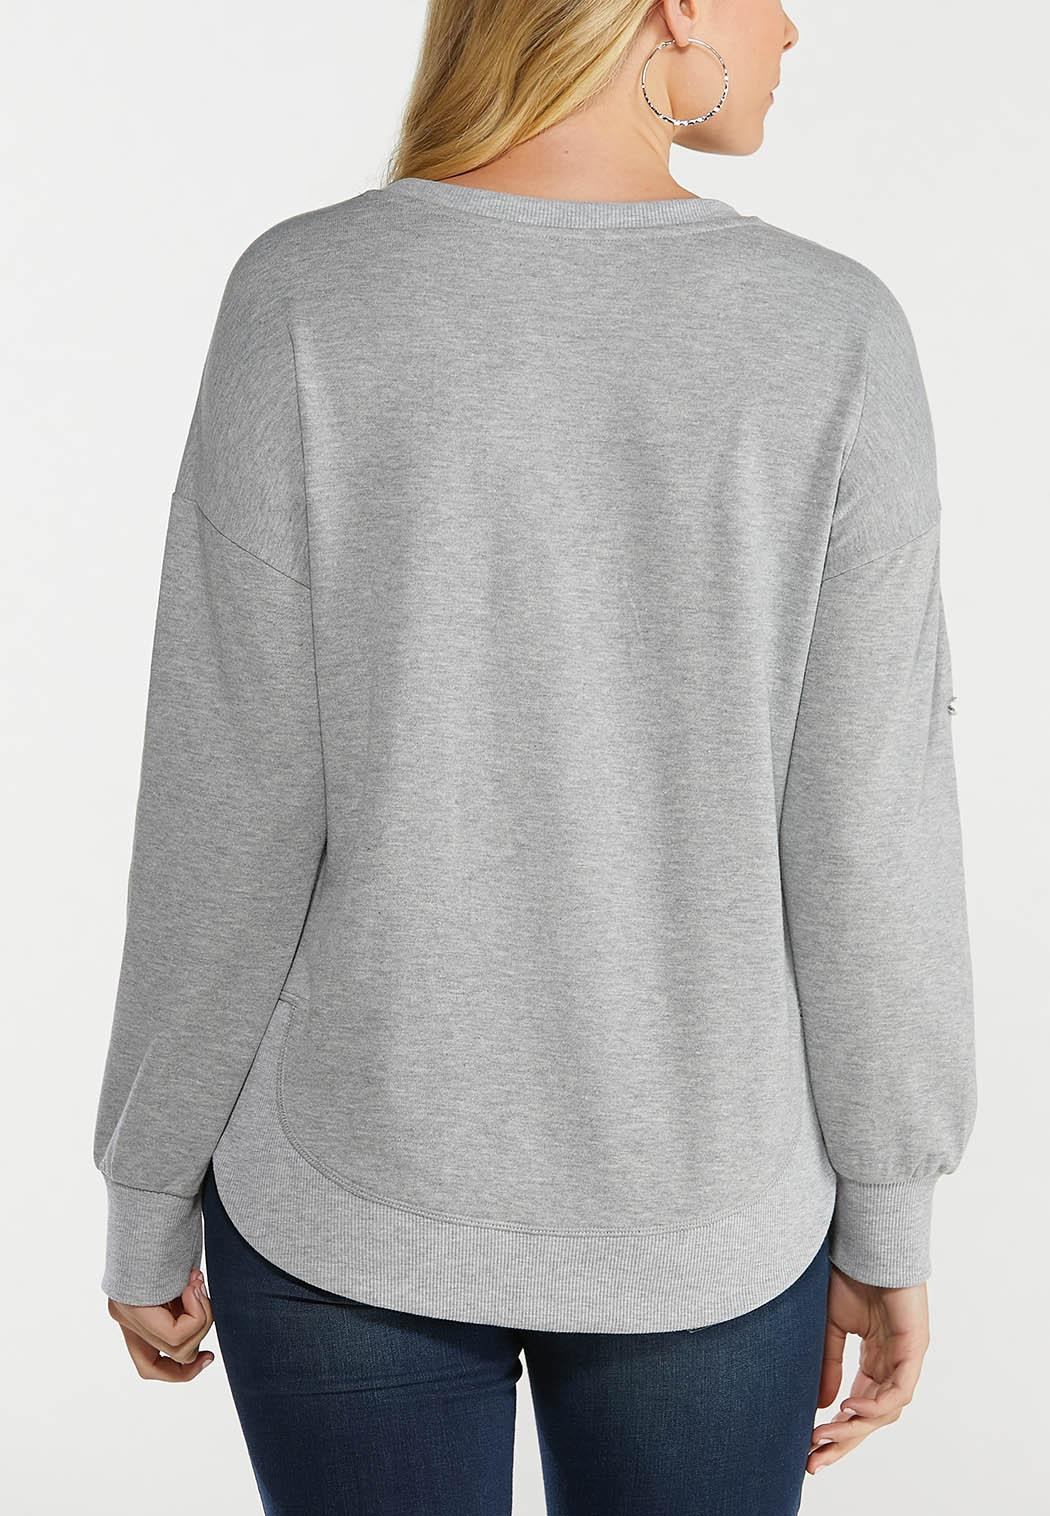 Plus Size Gray Distressed Sweatshirt (Item #44563067)